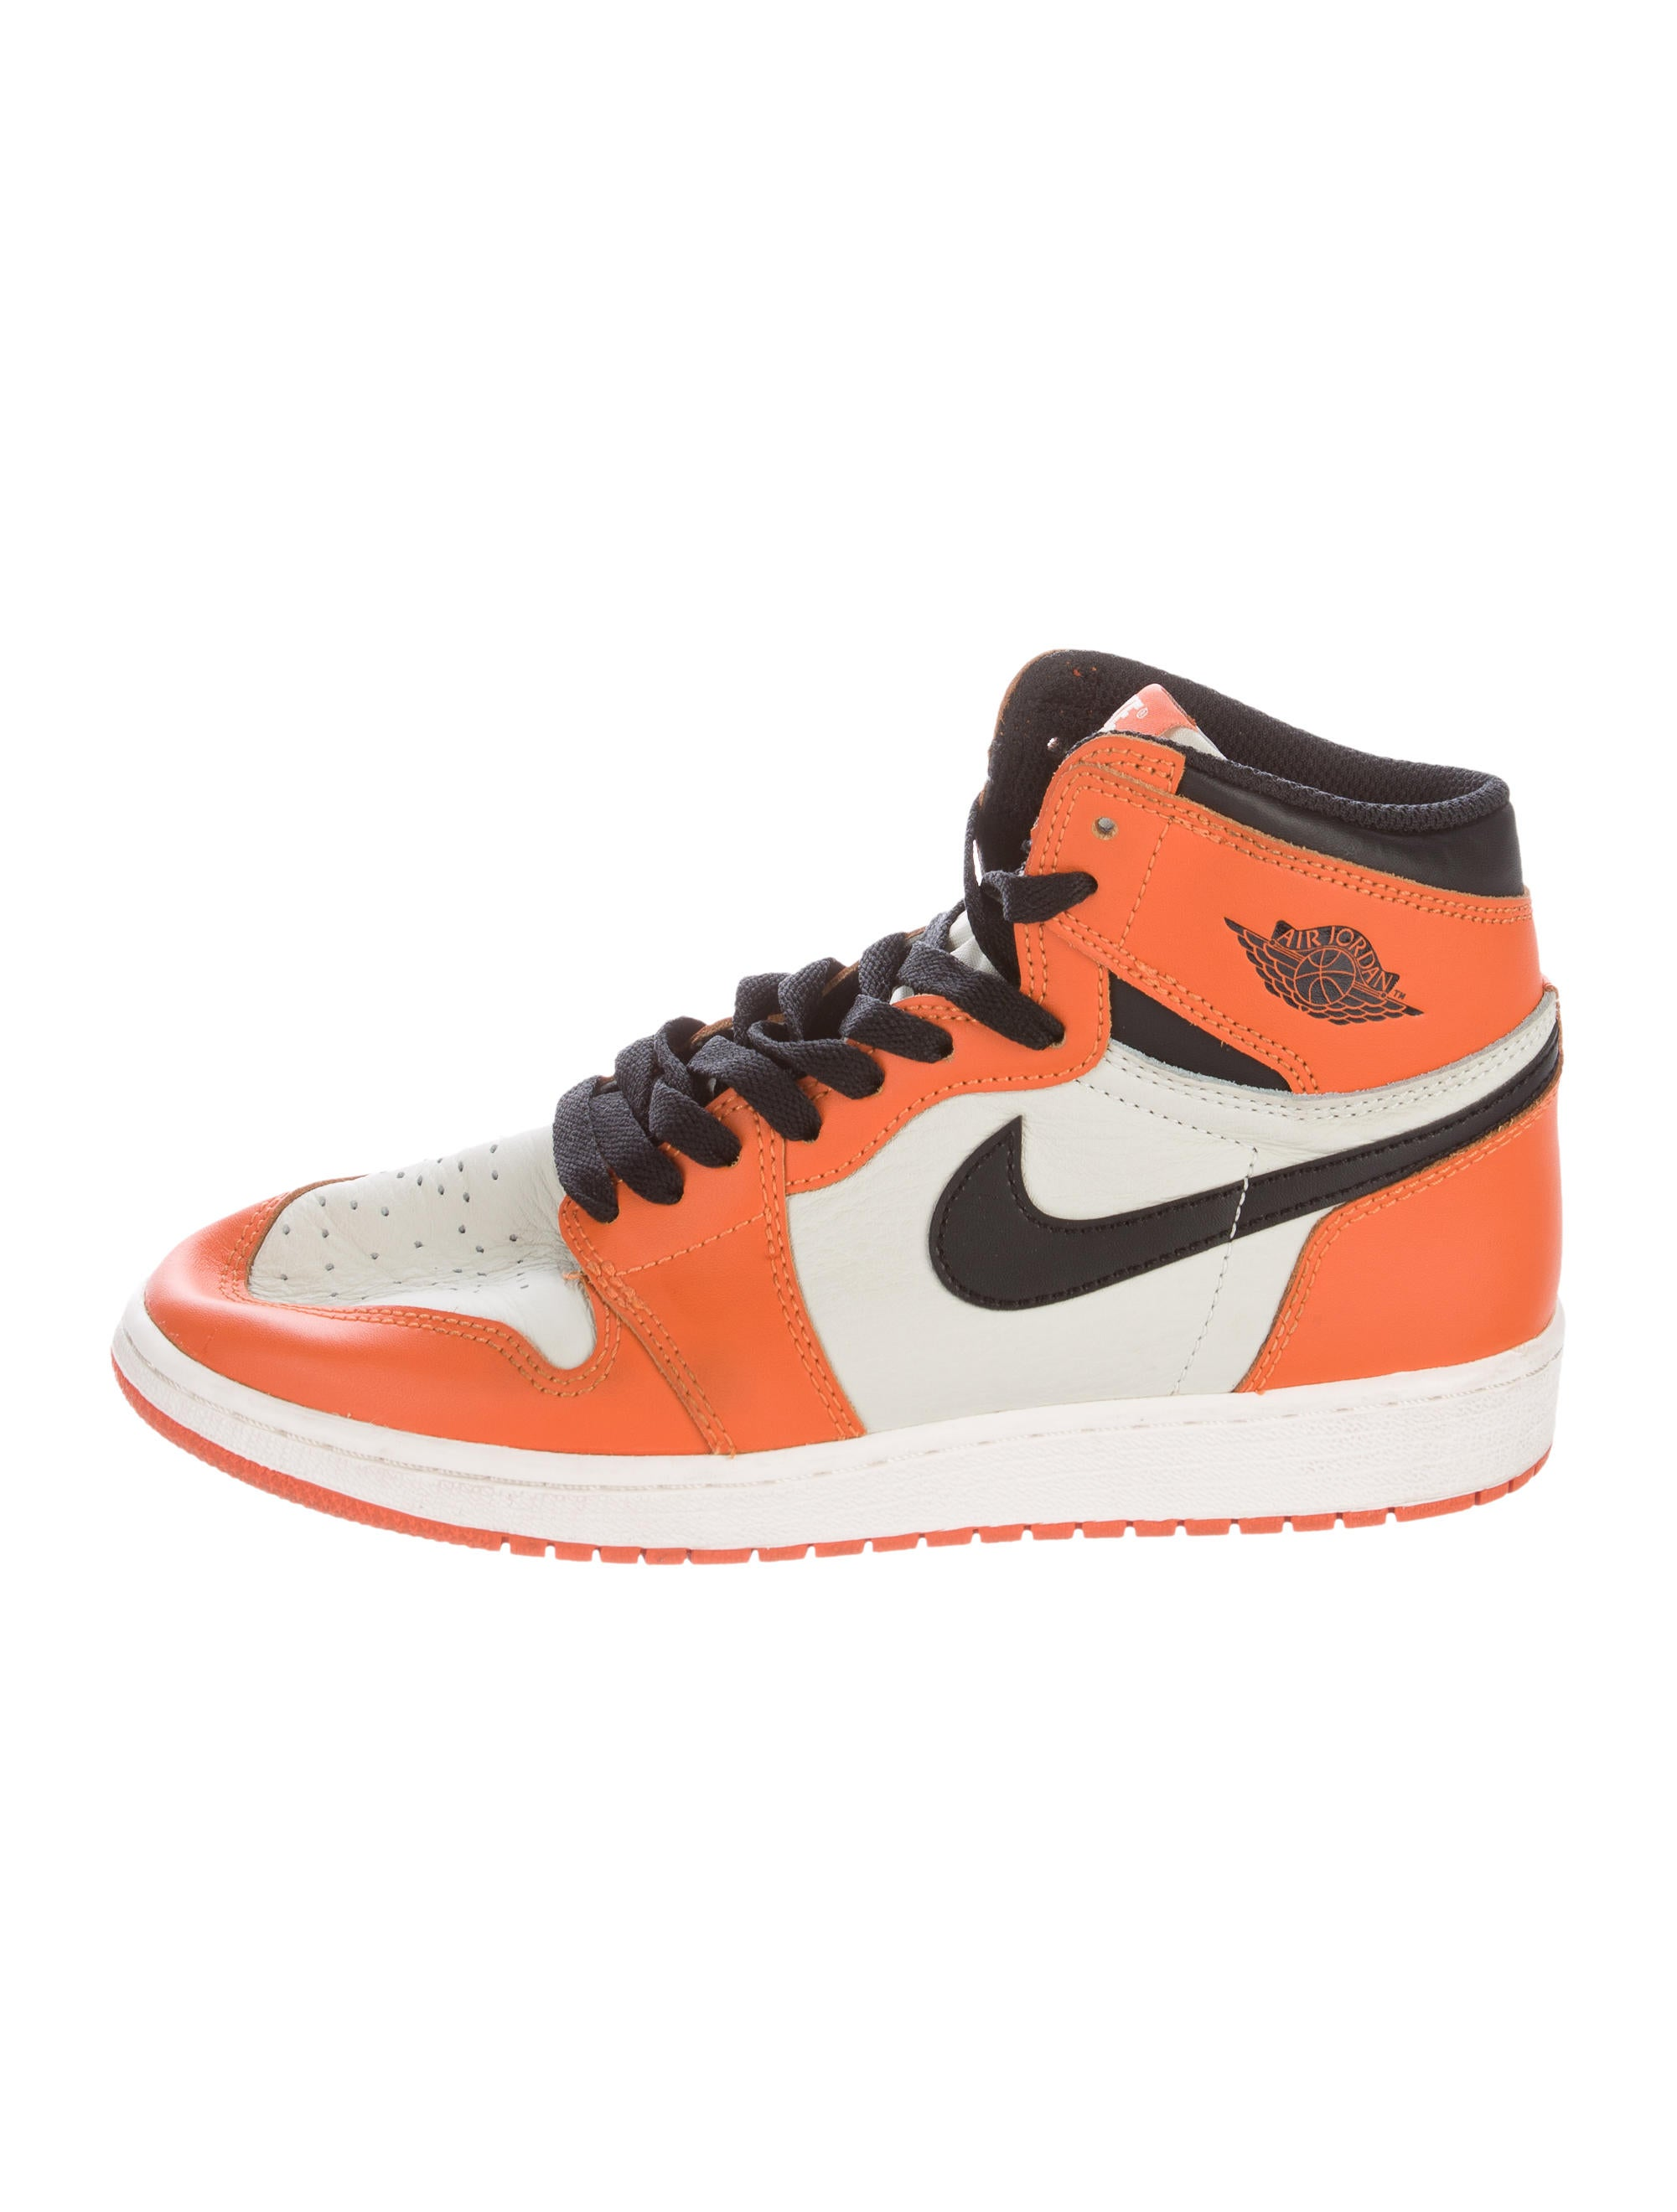 boys nike high top basketball shoes. Shop for boys shoes, clothing and. I cant make it out said the Professor. They are better artists than the Hindu, that carving you are looking at is Japanese, by the way, better artists and stronger workmen, man for man.